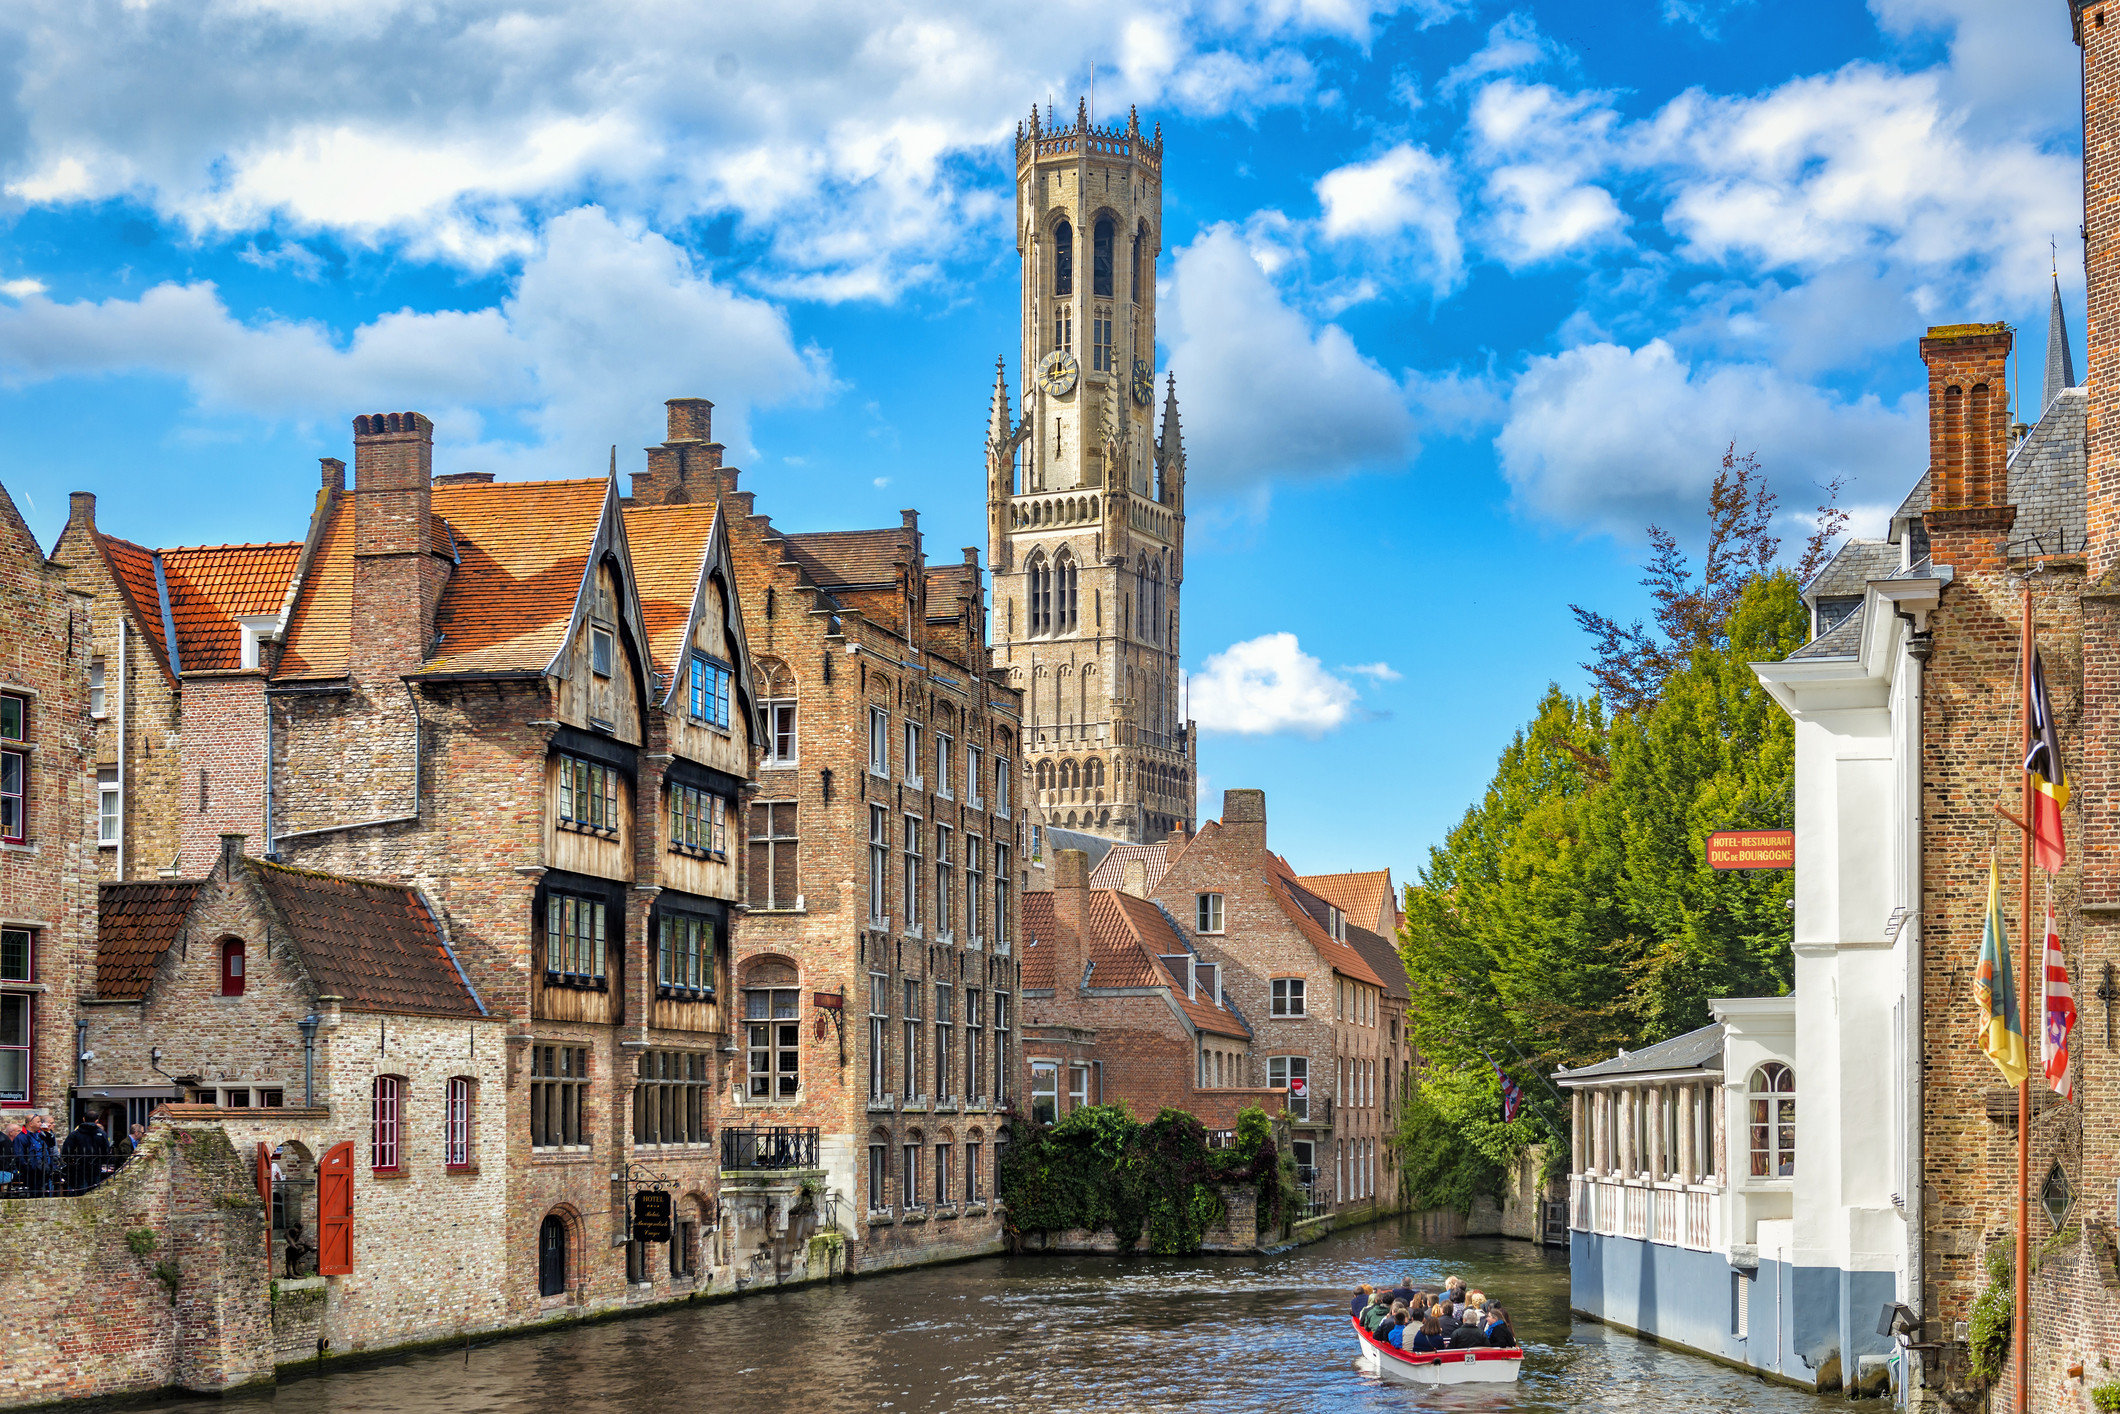 Travel Tech Travel Tips Trip Ideas building sky outdoor Canal Town geographical feature waterway body of water landmark River human settlement cityscape castle tourism vacation old travel Village stone surrounded